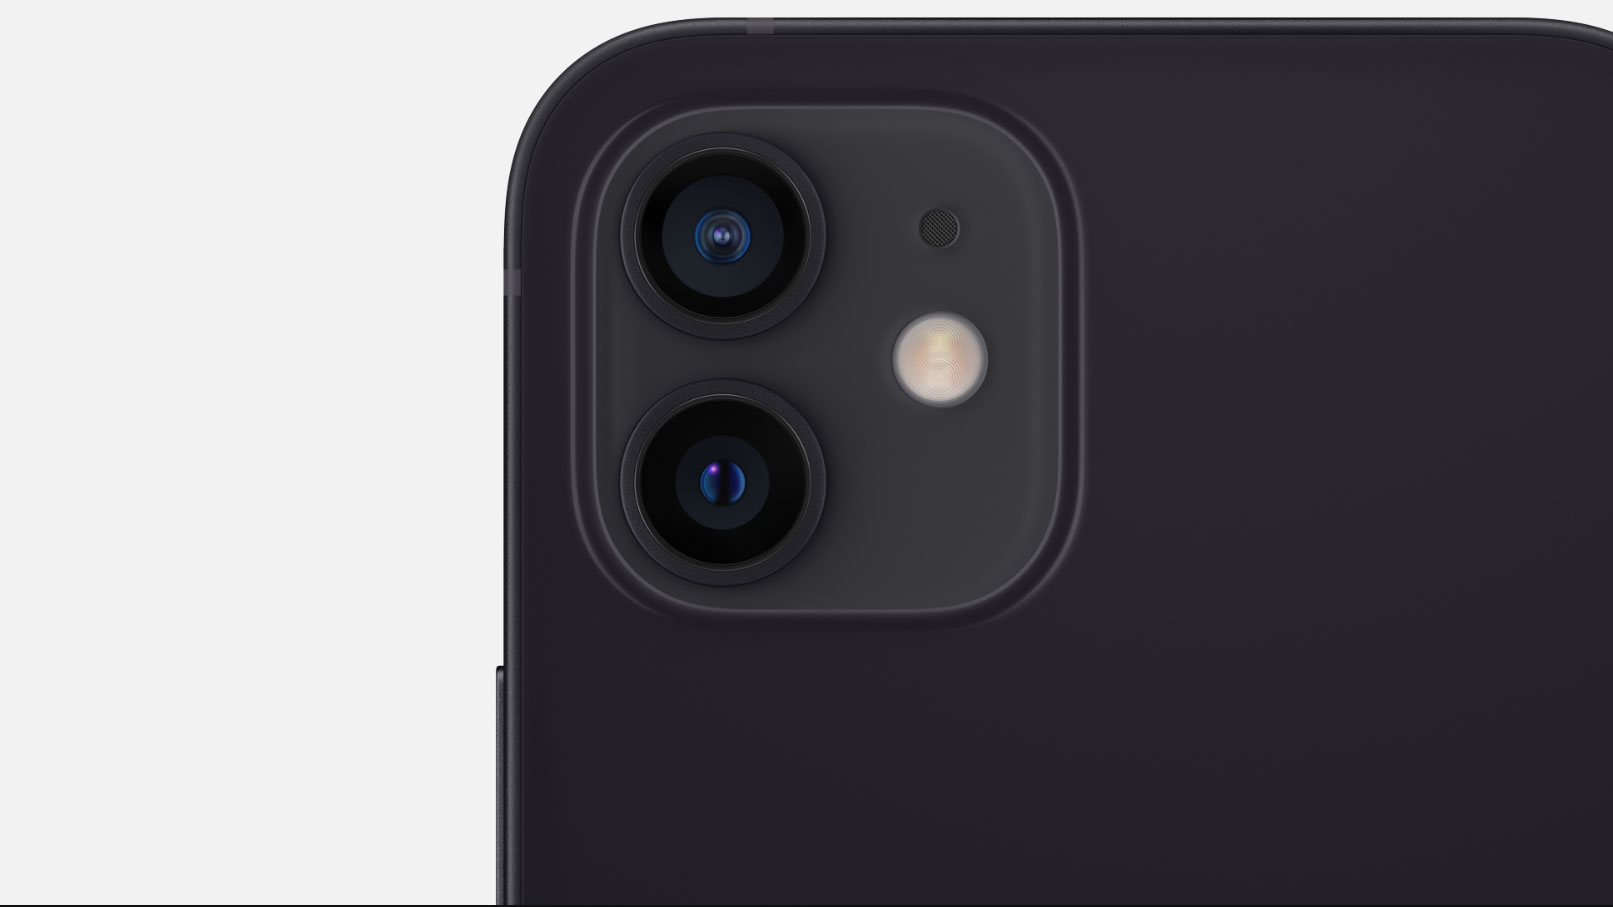 Close up of the rear cameras on the iPhone 12